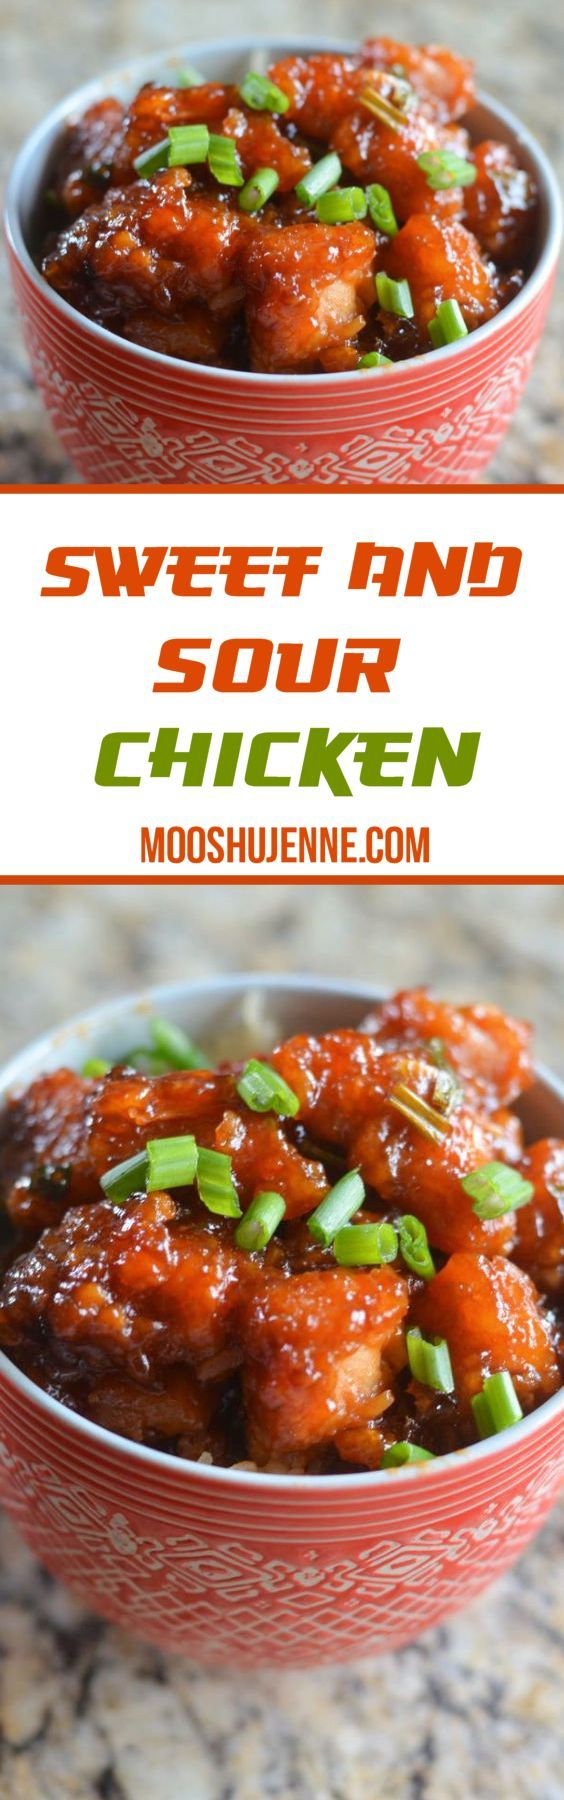 Chicken fried and tossed in a sweet and sour sauce scooped over rice and topped…